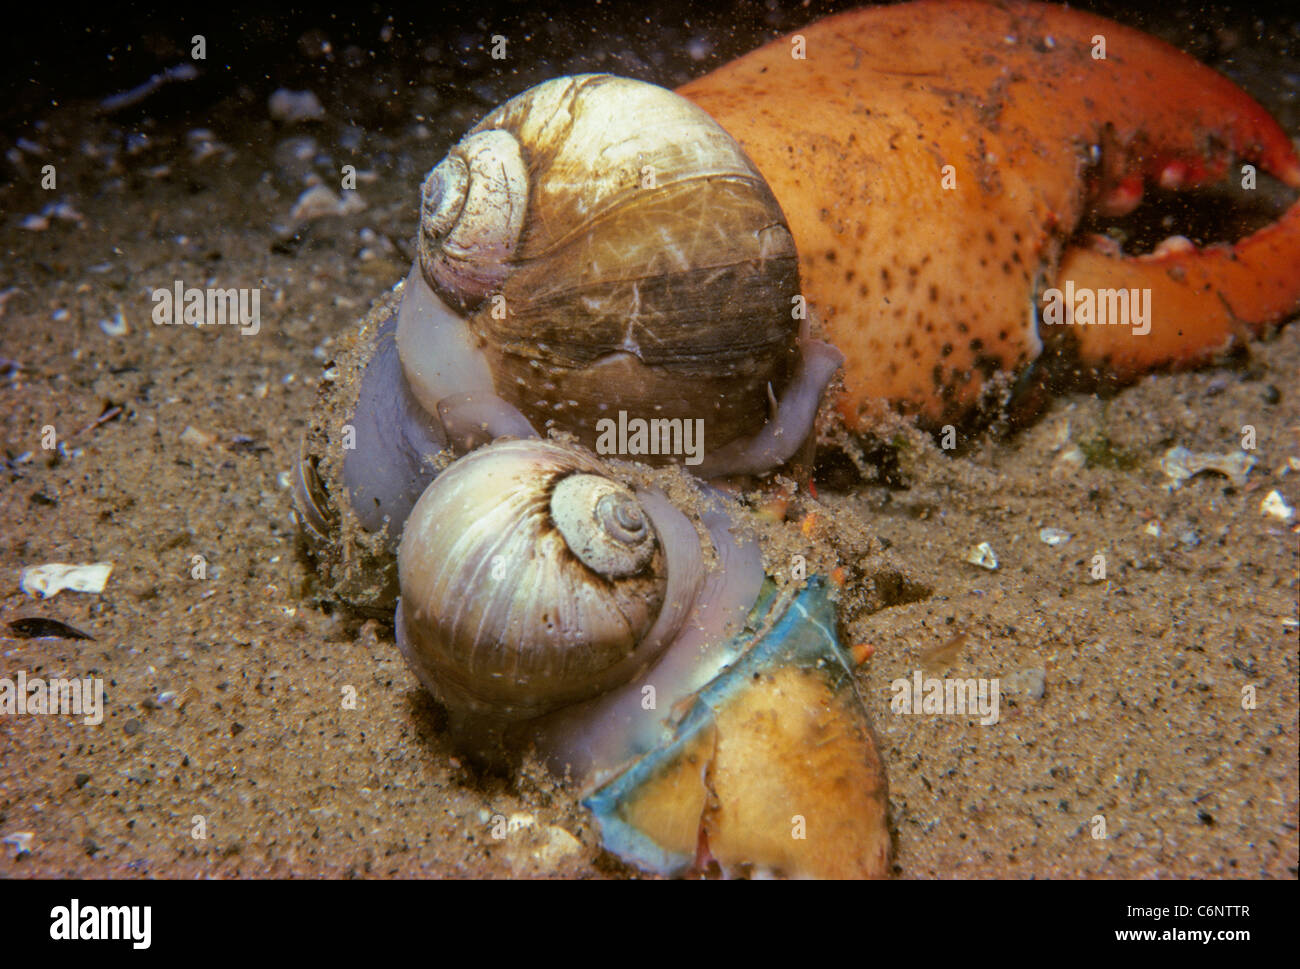 Northern moon Snails (Euspira heros) scavenging on a lobster claw. New England, North Atlantic Ocean - Stock Image